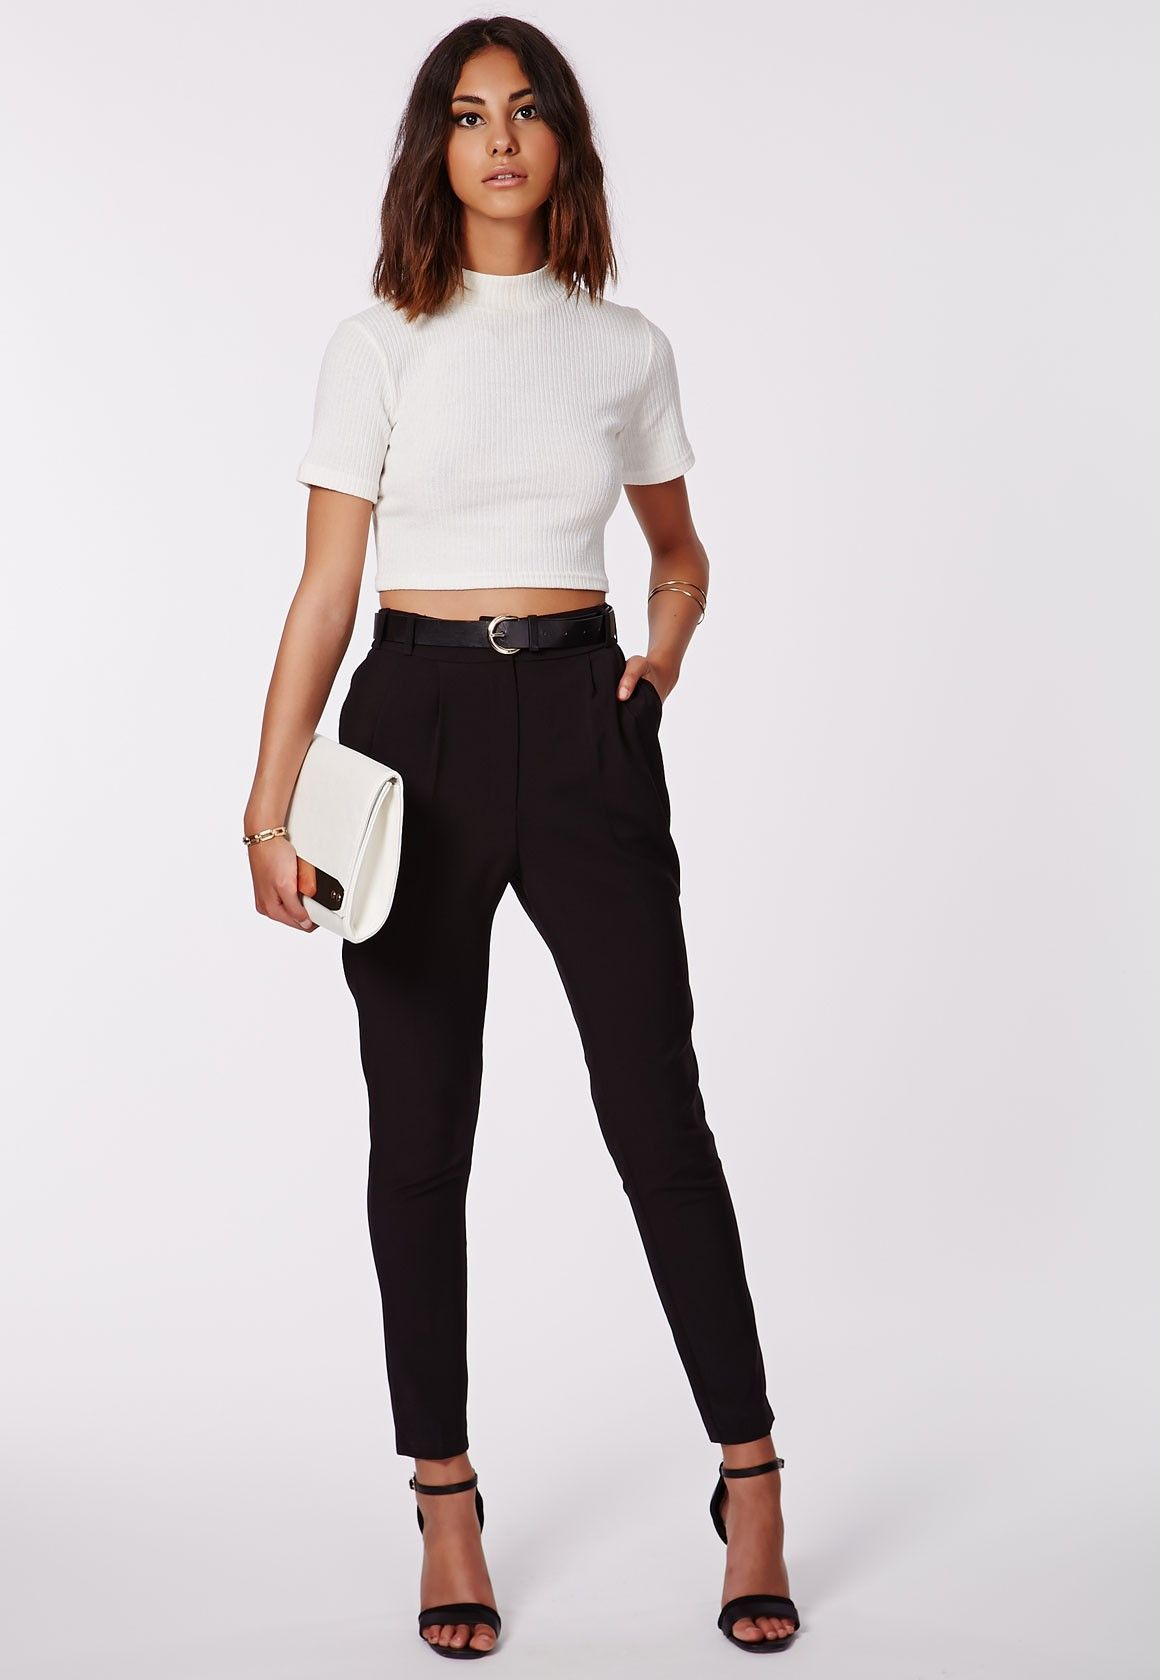 Uttara High Waisted Cigarette Trousers - Trousers - Missguided